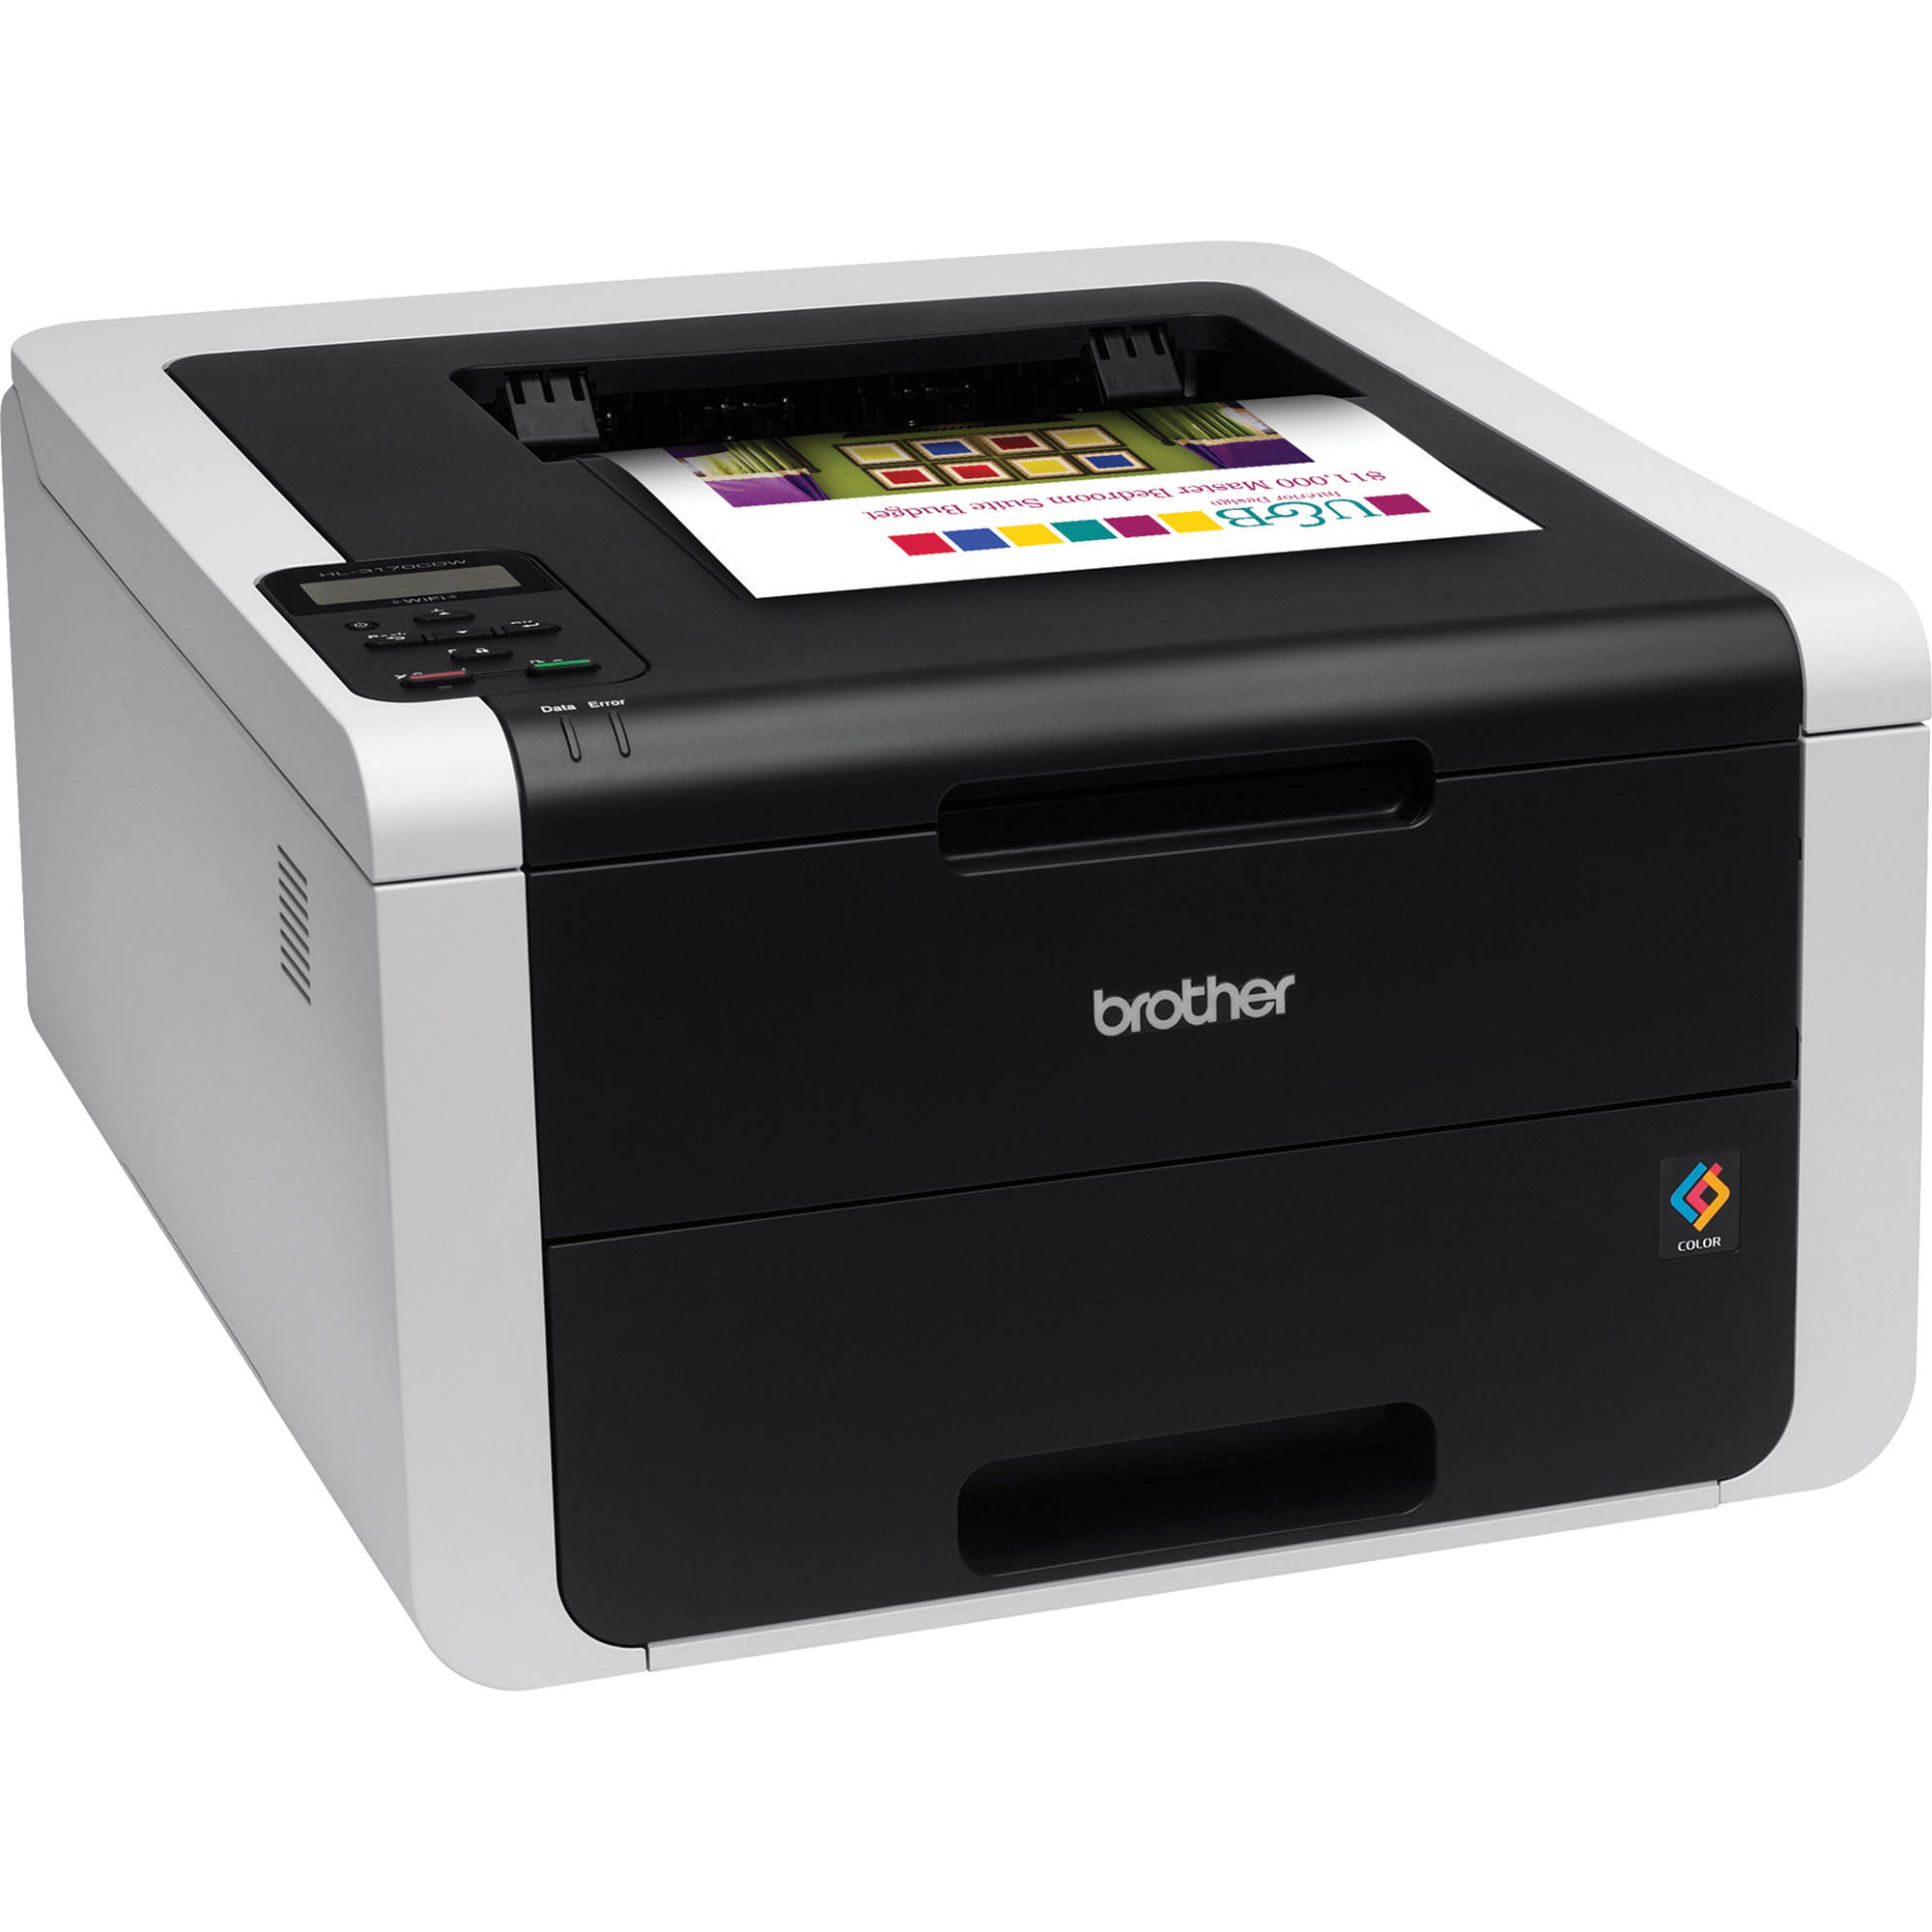 Color printers laser - Brother Hl 3170cdw Wireless Color Laser Printer